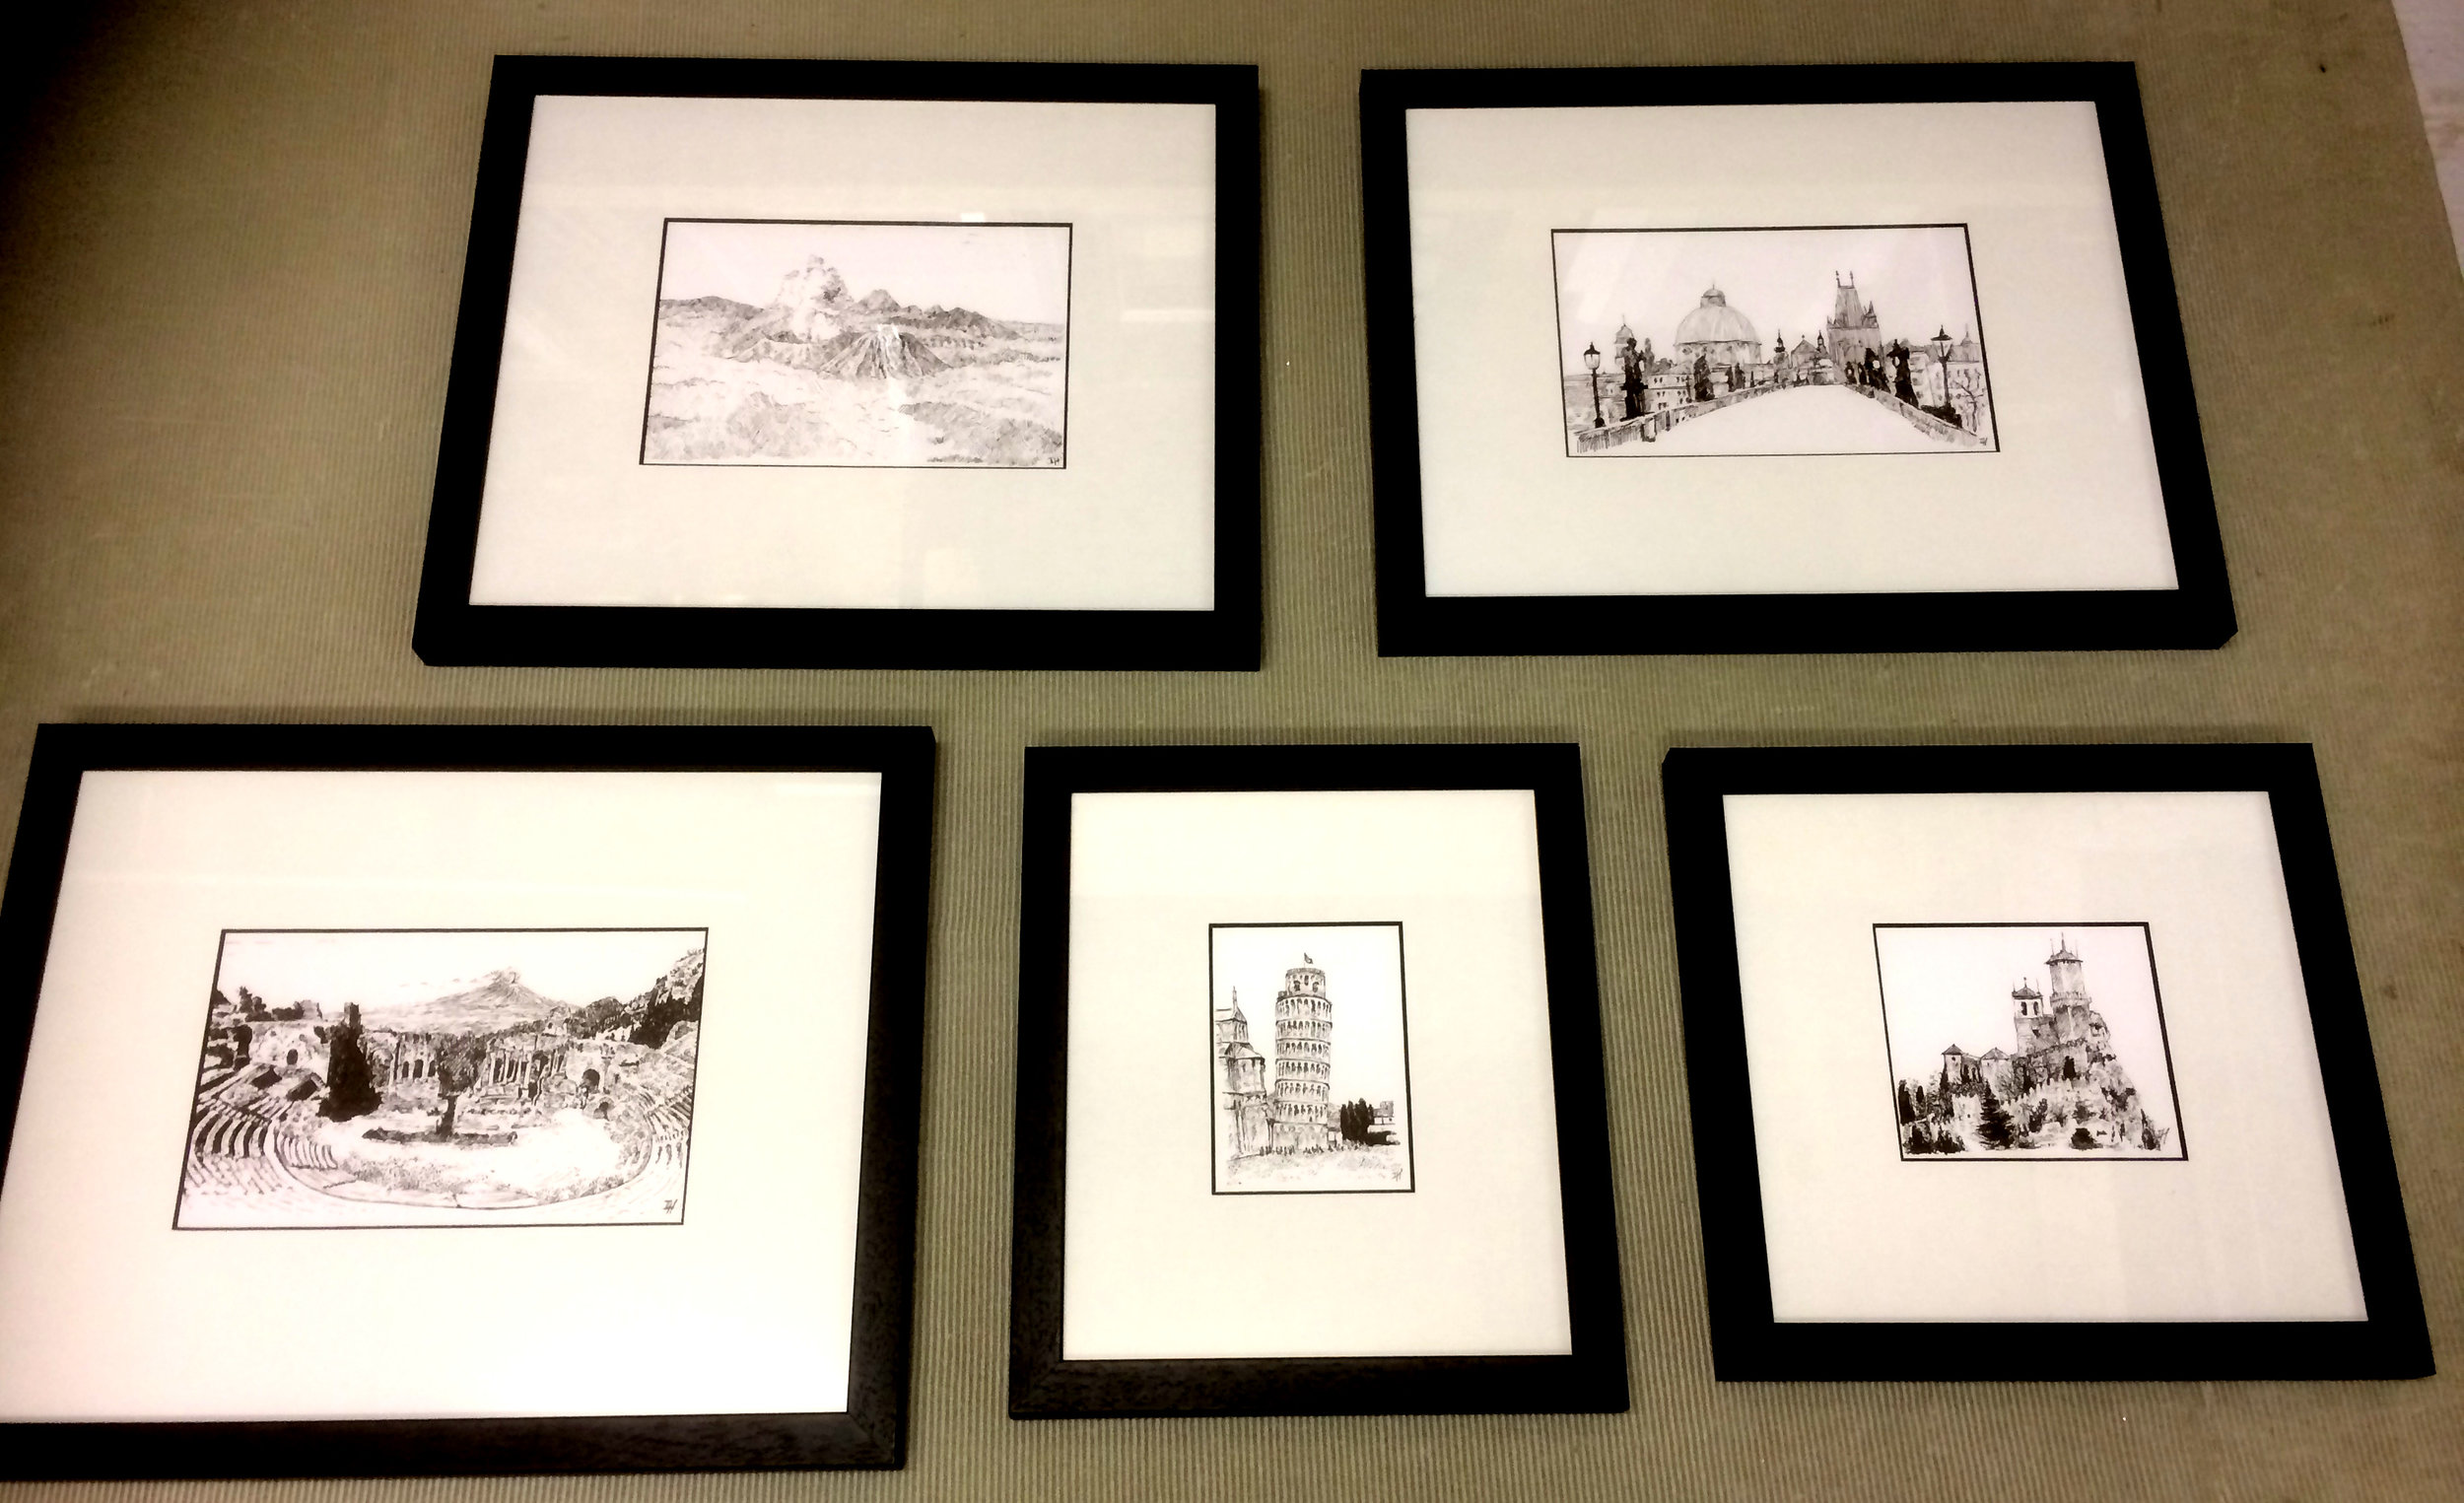 These original ink drawings were quite simply framed as our customer wanted. Single blackcore mount borders and a narrow black frame. Conservation backing board and tape was used.